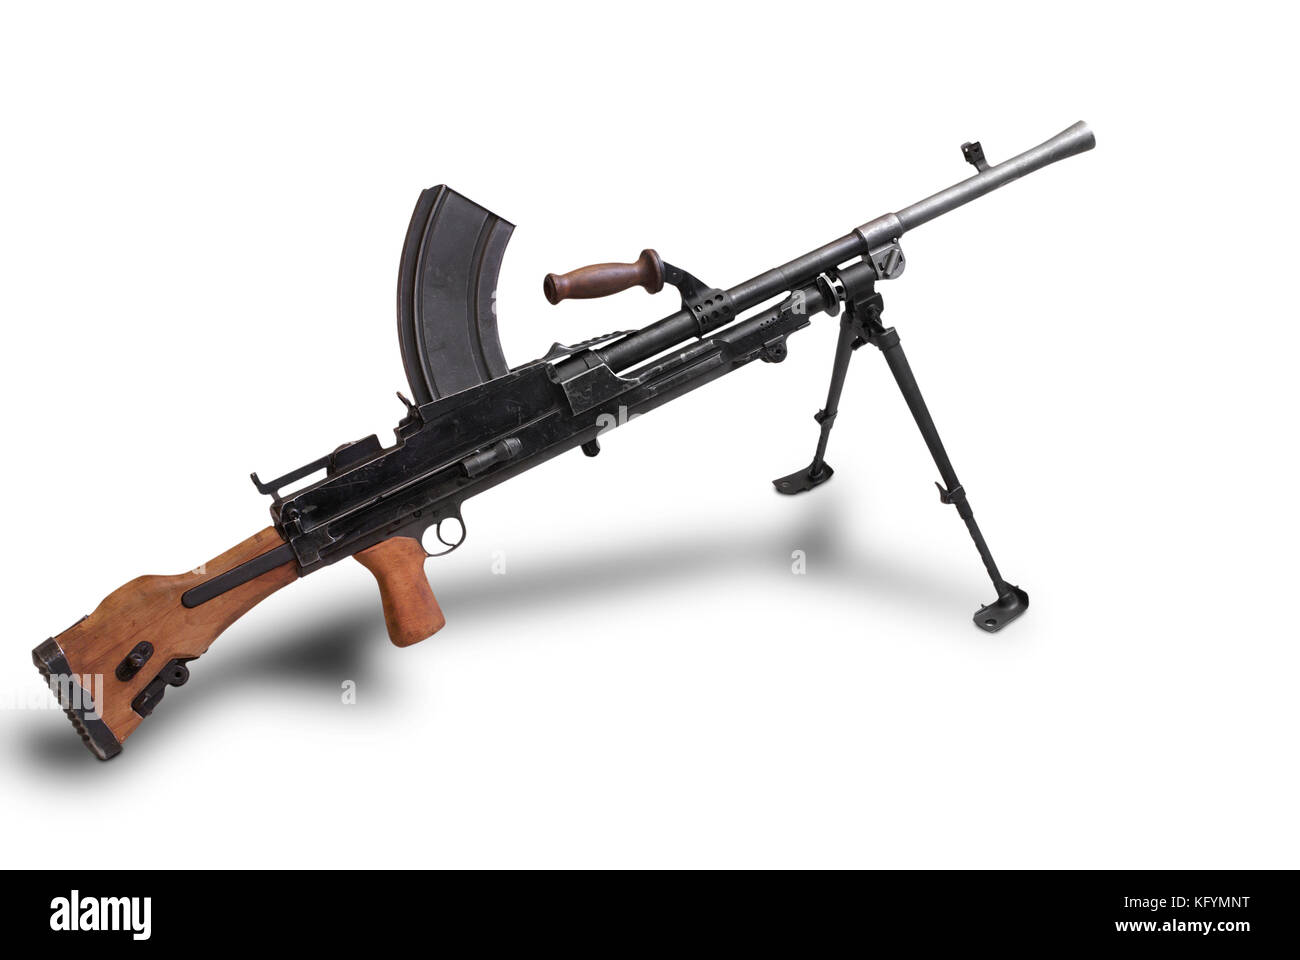 Great Britain at the WW2. Light machine gun Bren Mk1 (from Brno, the Czechoslovak city of design, and Enfield, the - Stock Image